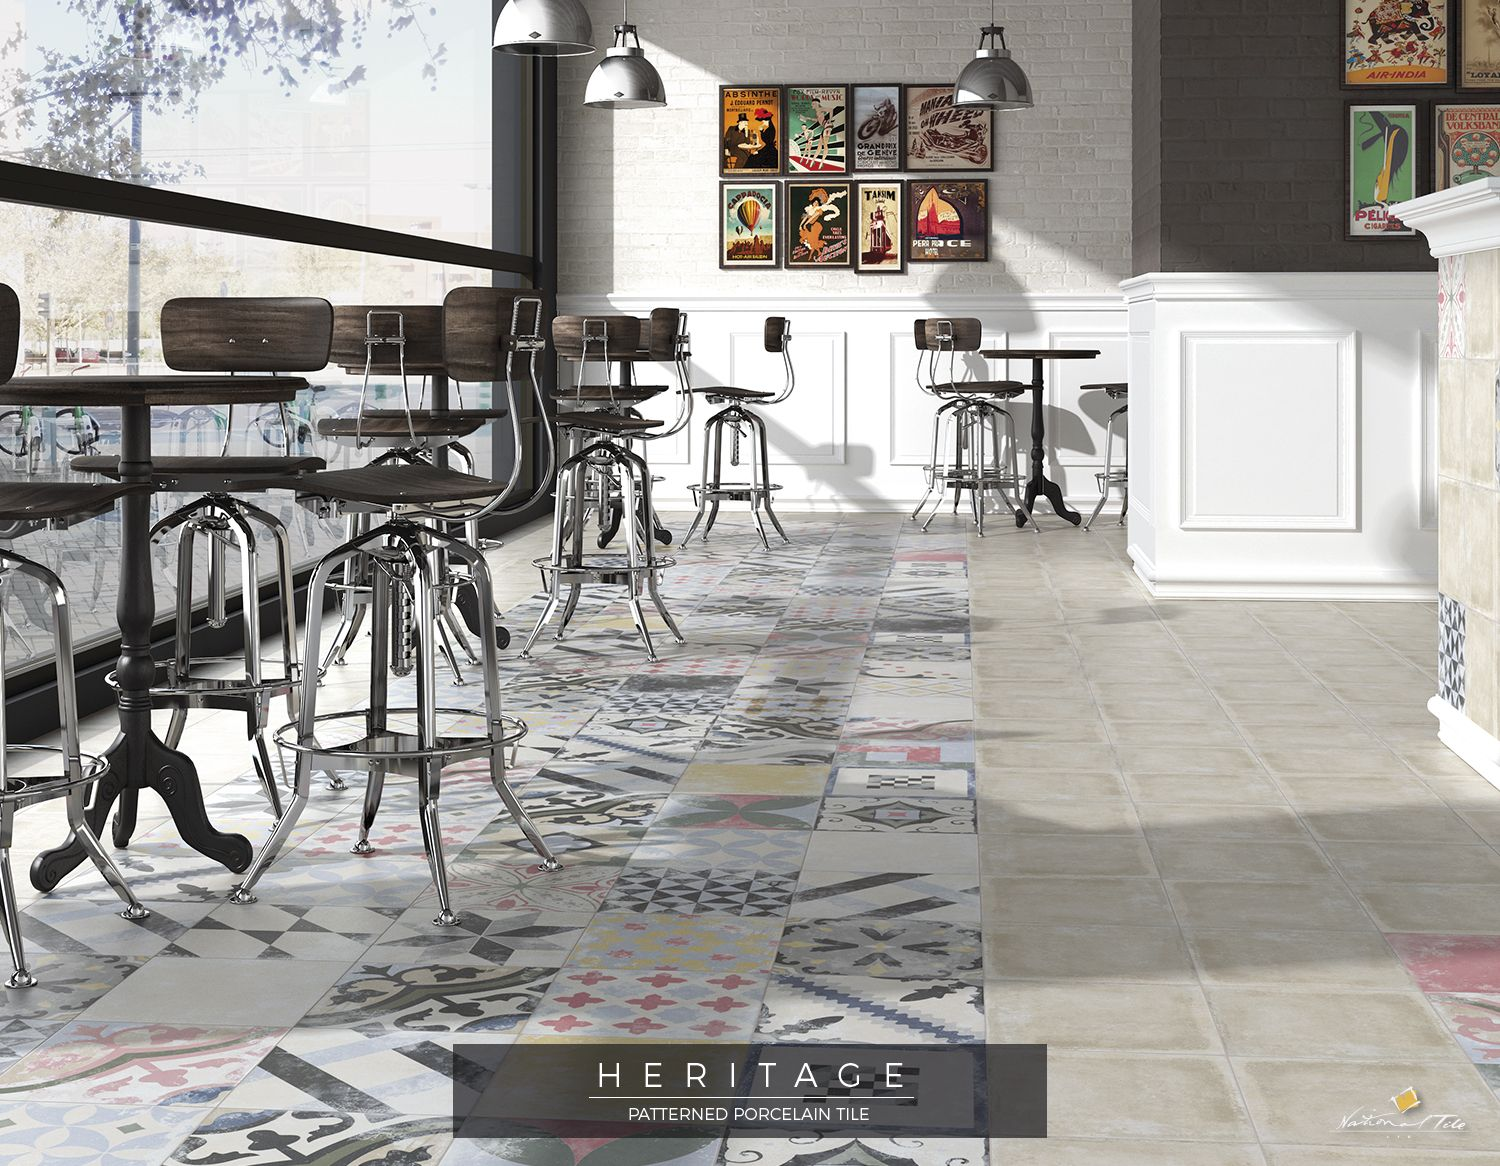 Coffee Shop / Food Hall / Restaurant / Patterned Tiles